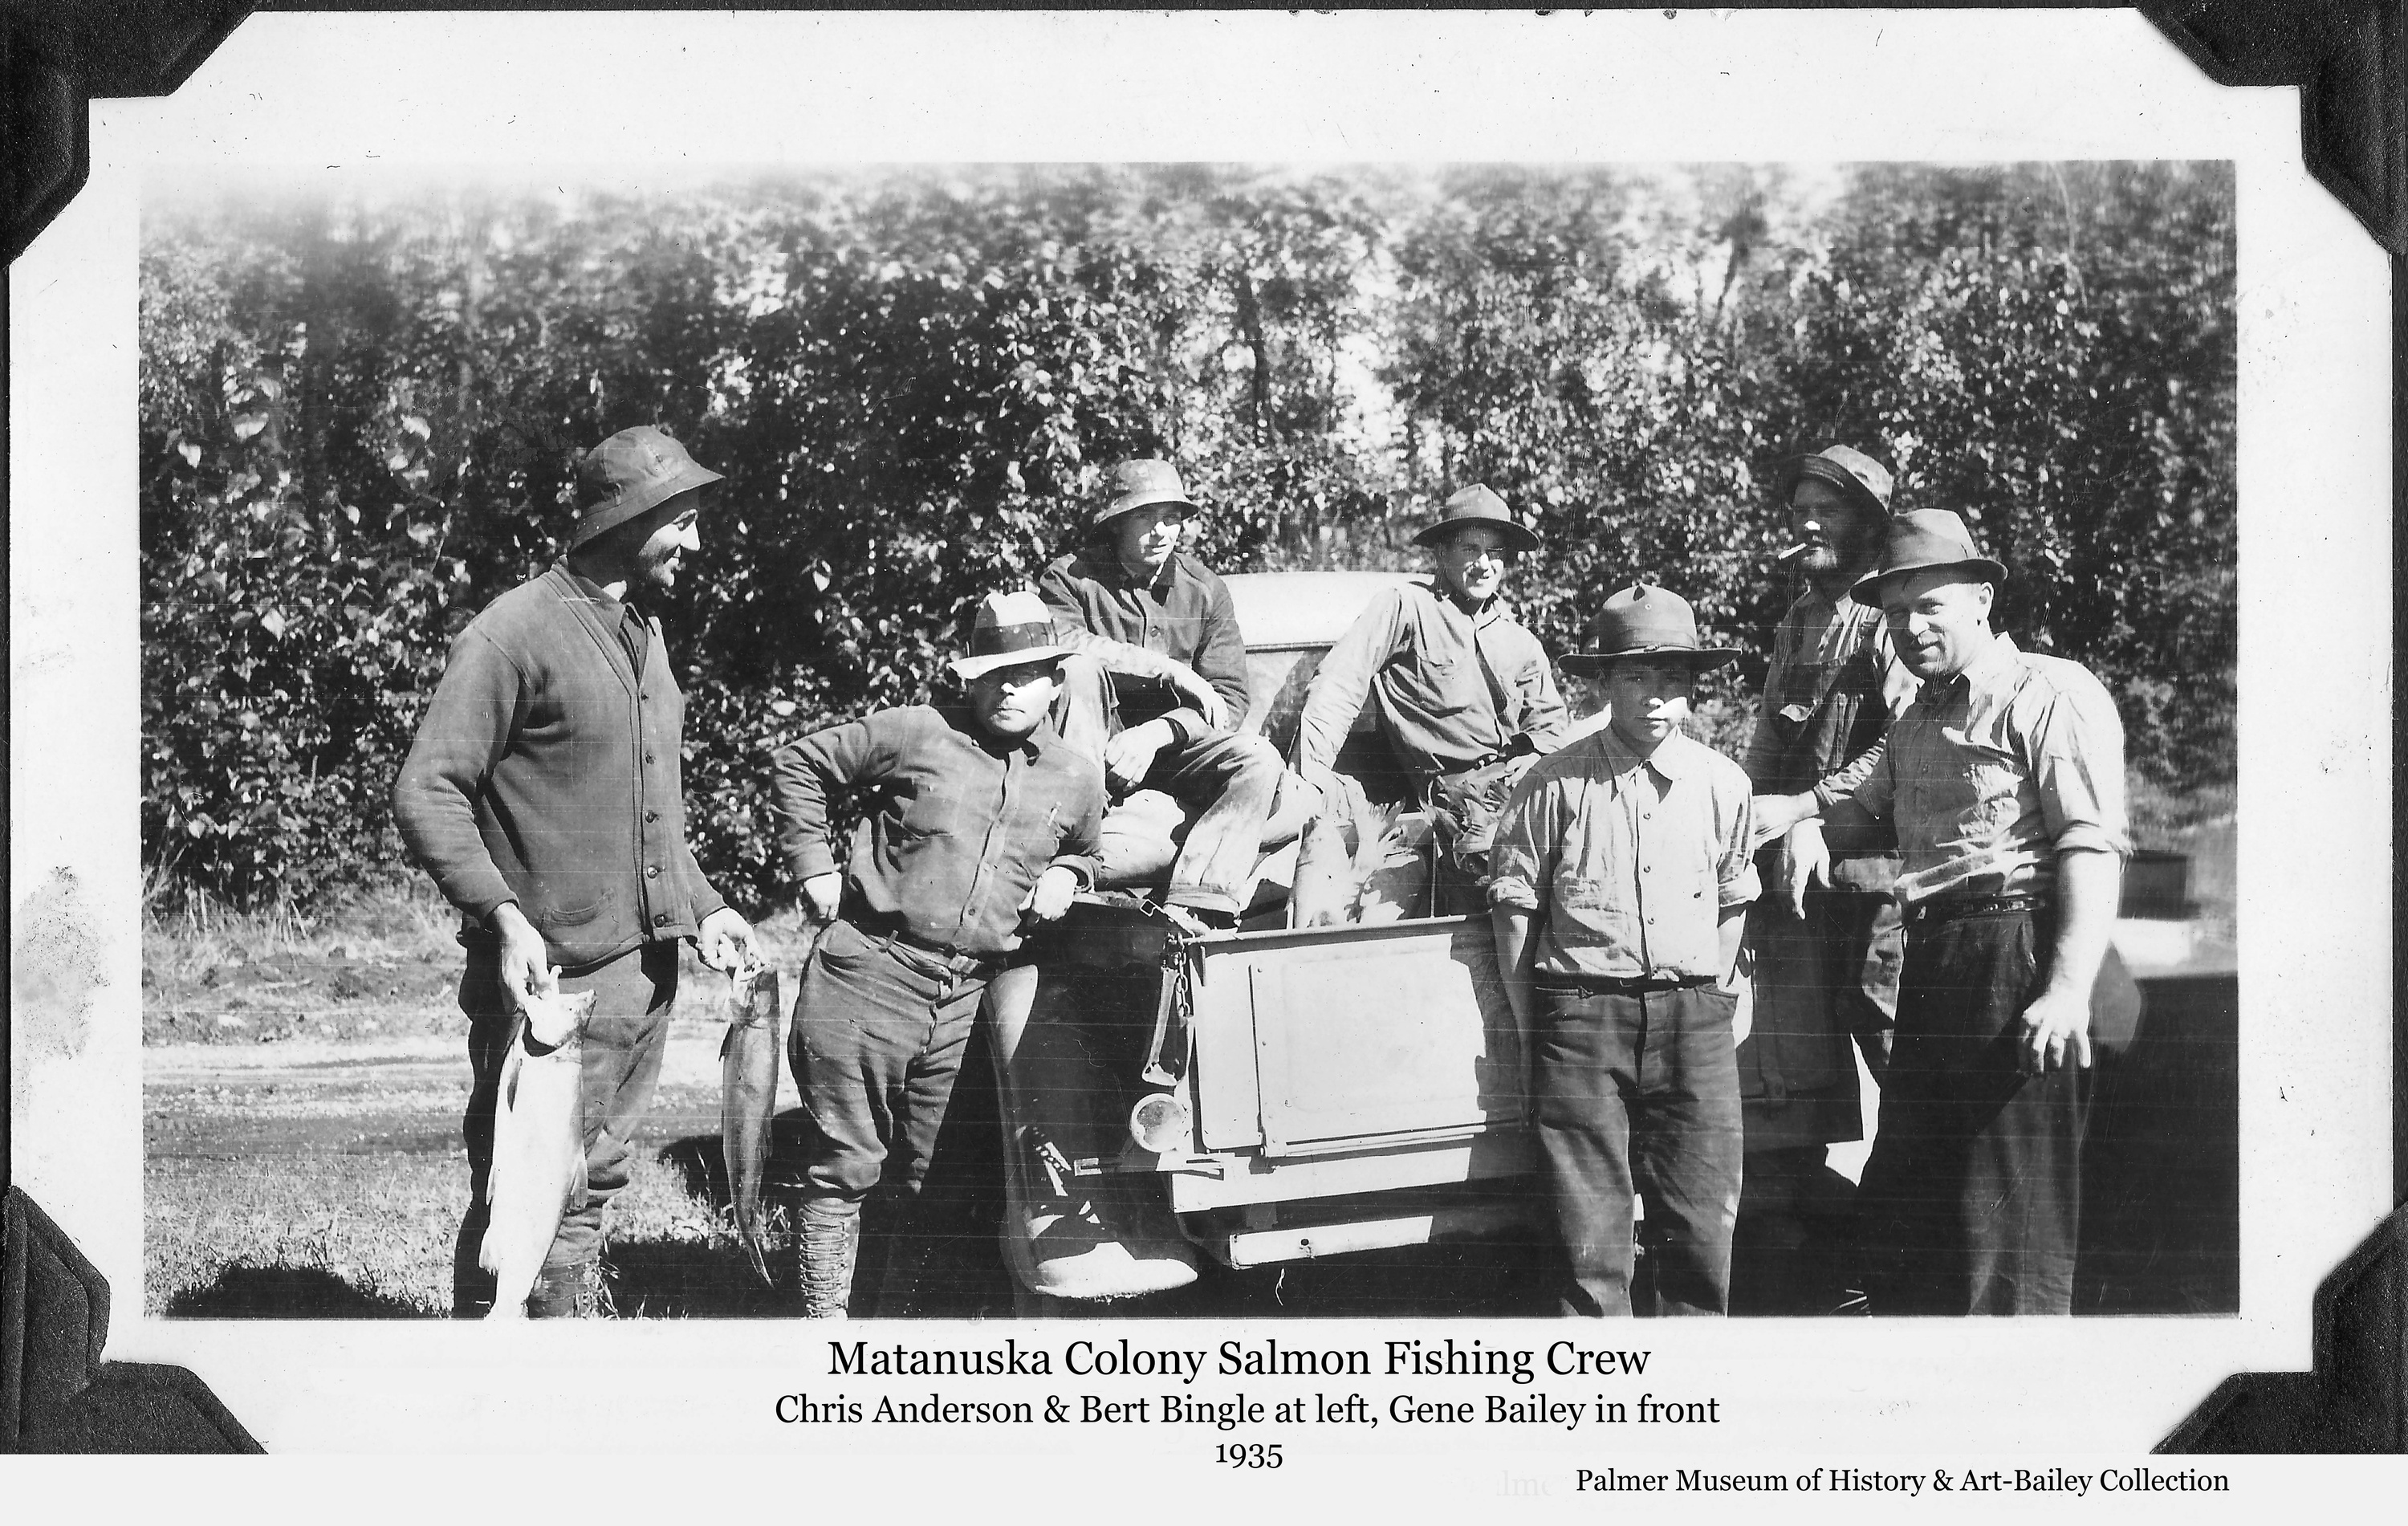 Image is a summer view of seven men gathered around the back of a pickup truck.   A man at left, identified as Colonist Chris Anderson, is holding two salmon in his hands.  Additional salmon are visible in the back of the truck.  Rev. Bert Bingle leans against the truck next to Anderson.  Young Gene Bailey stands front and center.